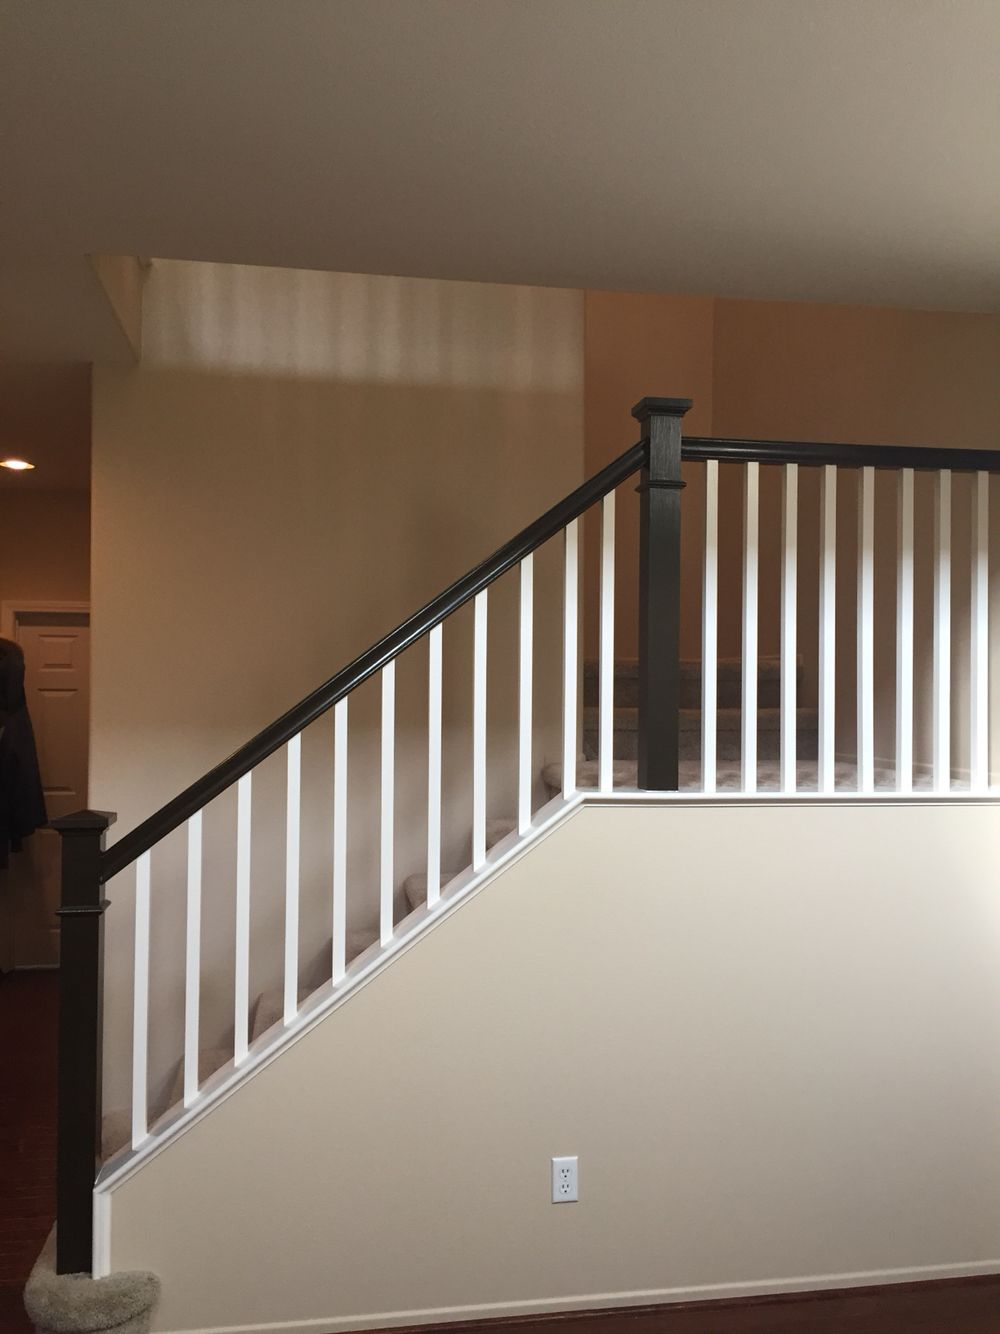 Behr Wall Color Lentil Spindles Swiss Coffee Handrail